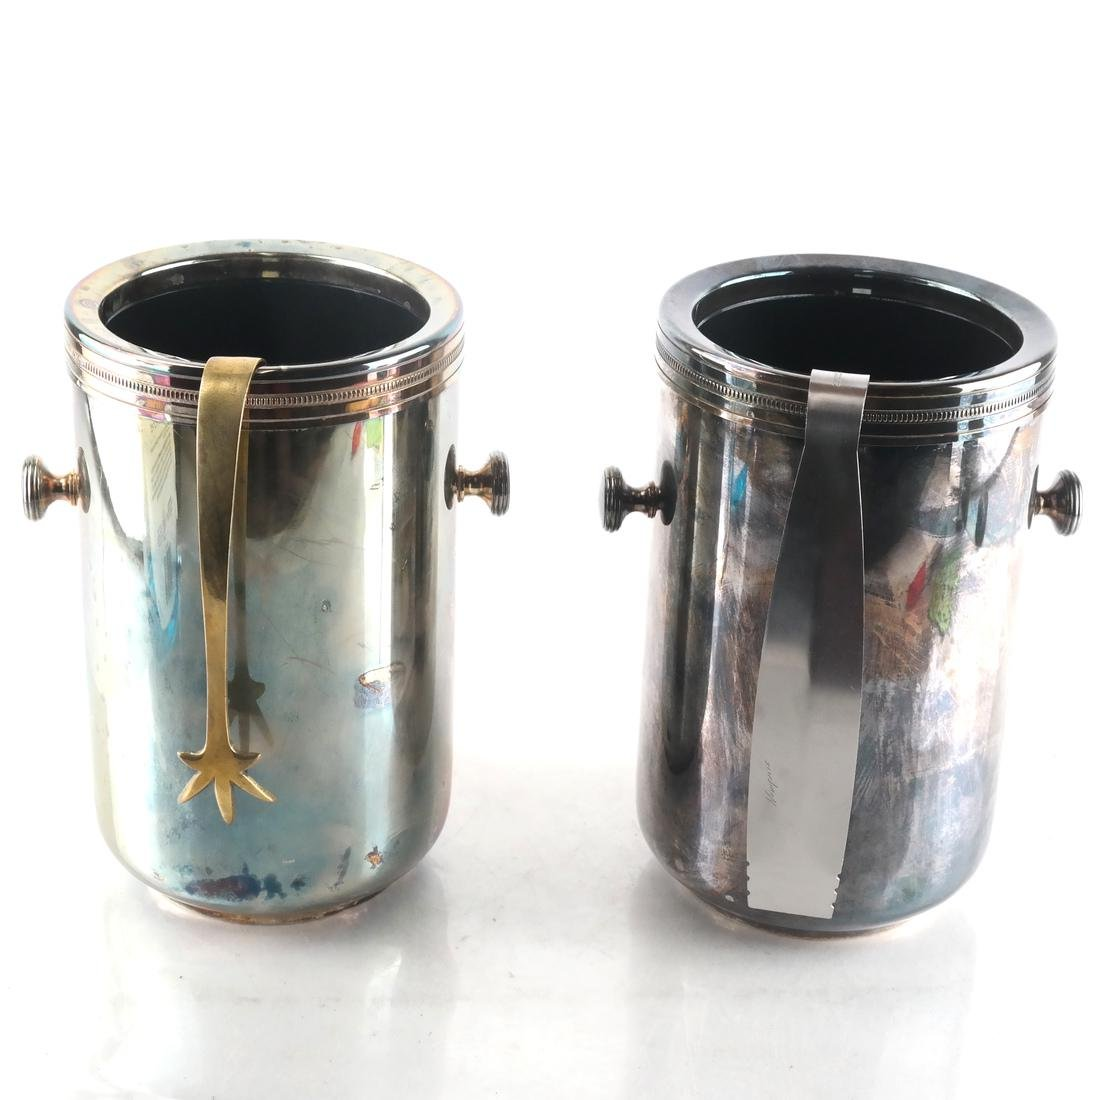 2 Silver-Plated Wine Coolers by Gorham